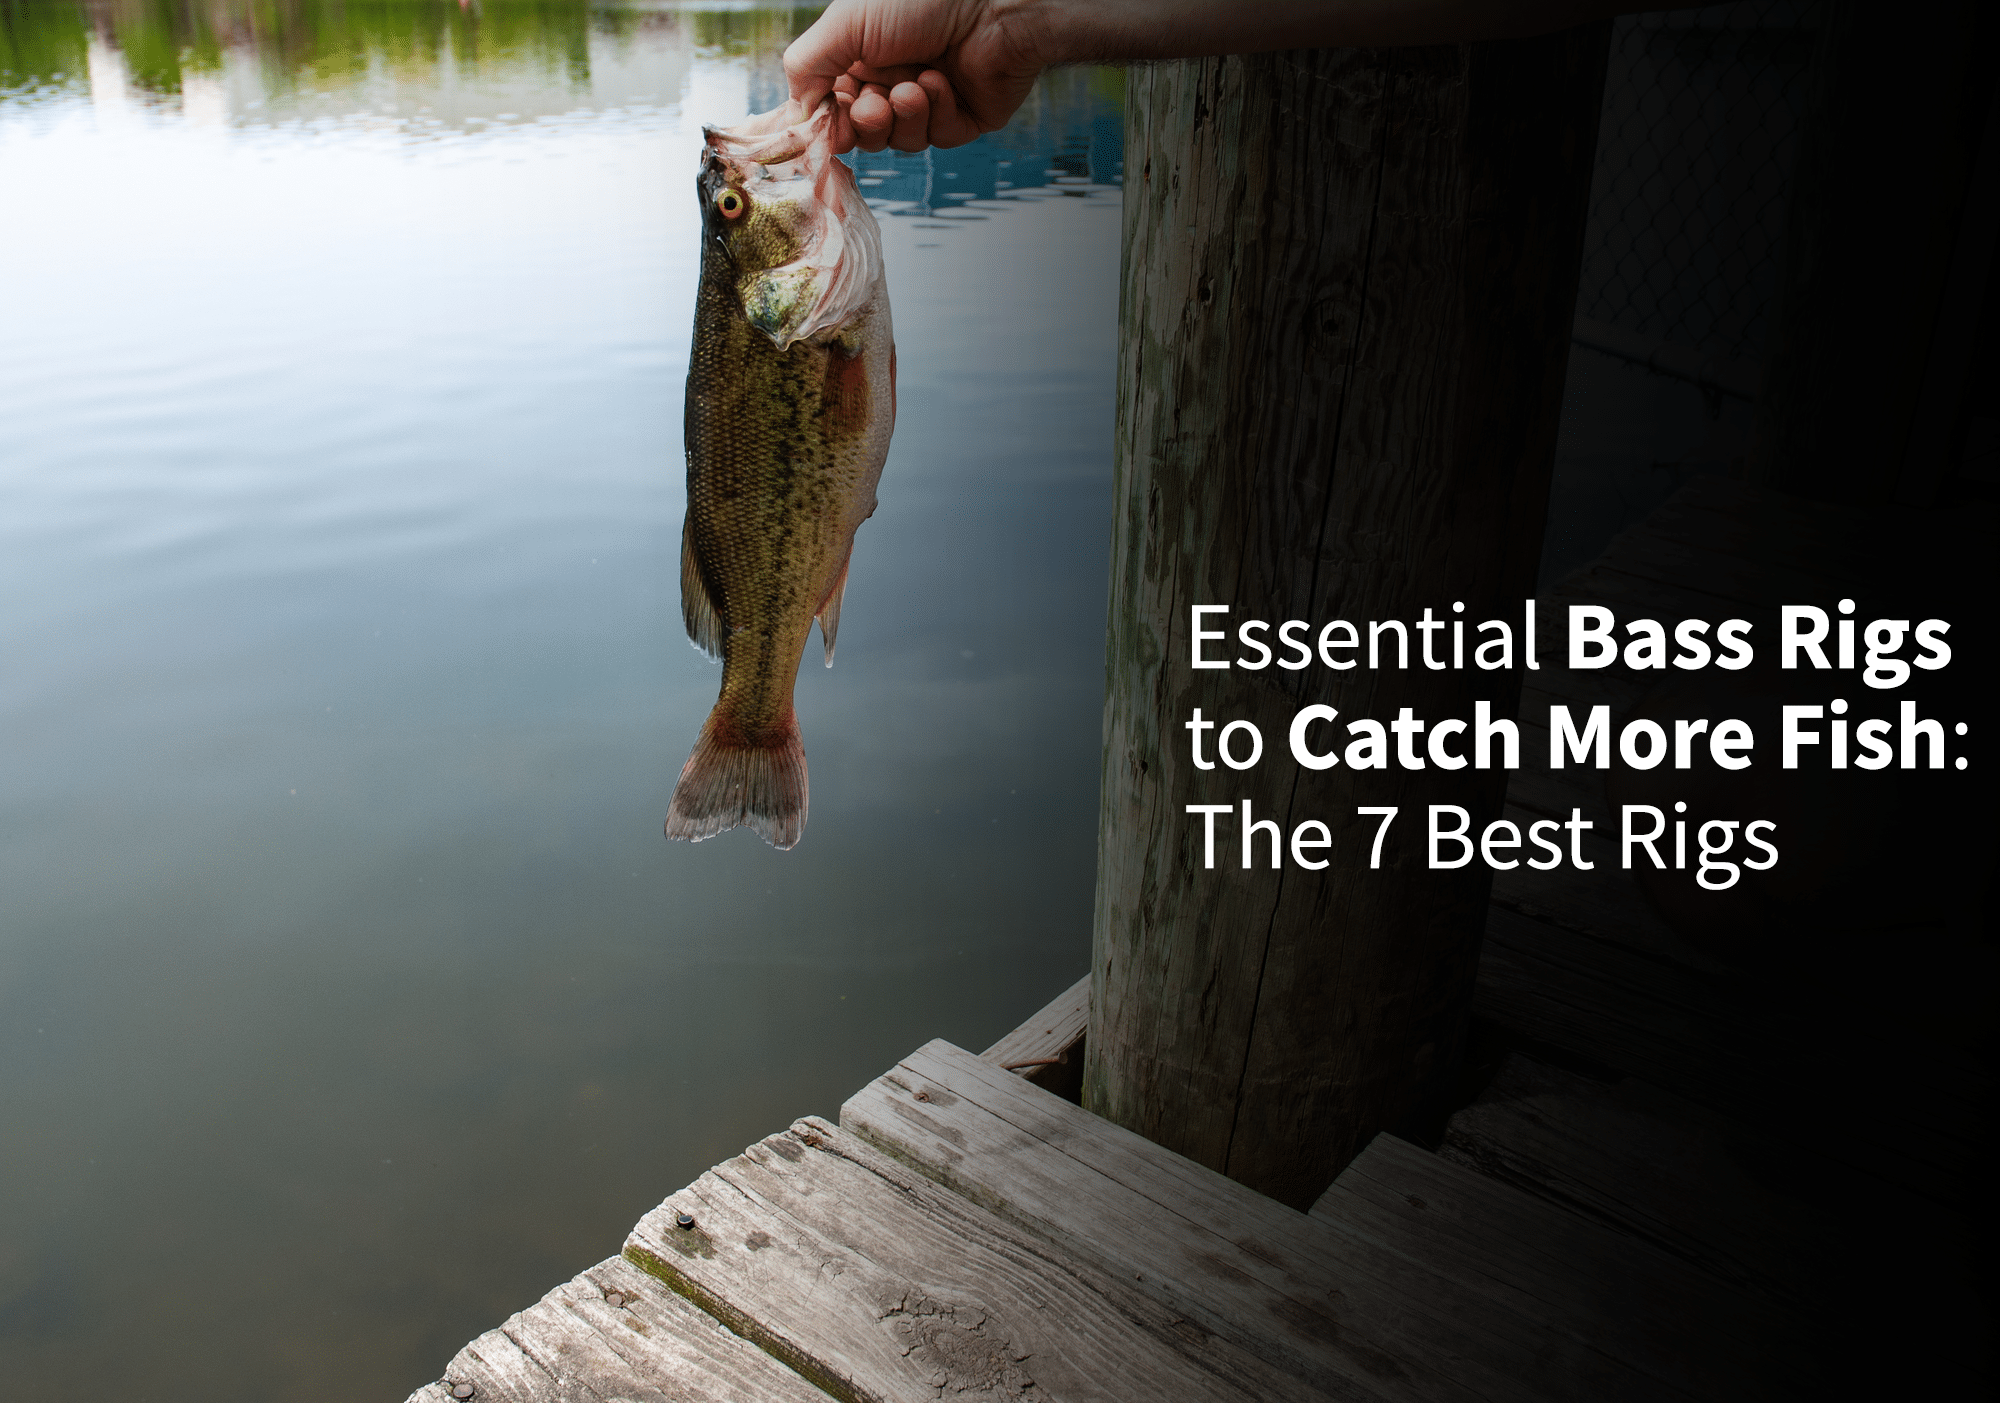 Essential Bass Rigs to Catch More Fish: The 7 Best Rigs